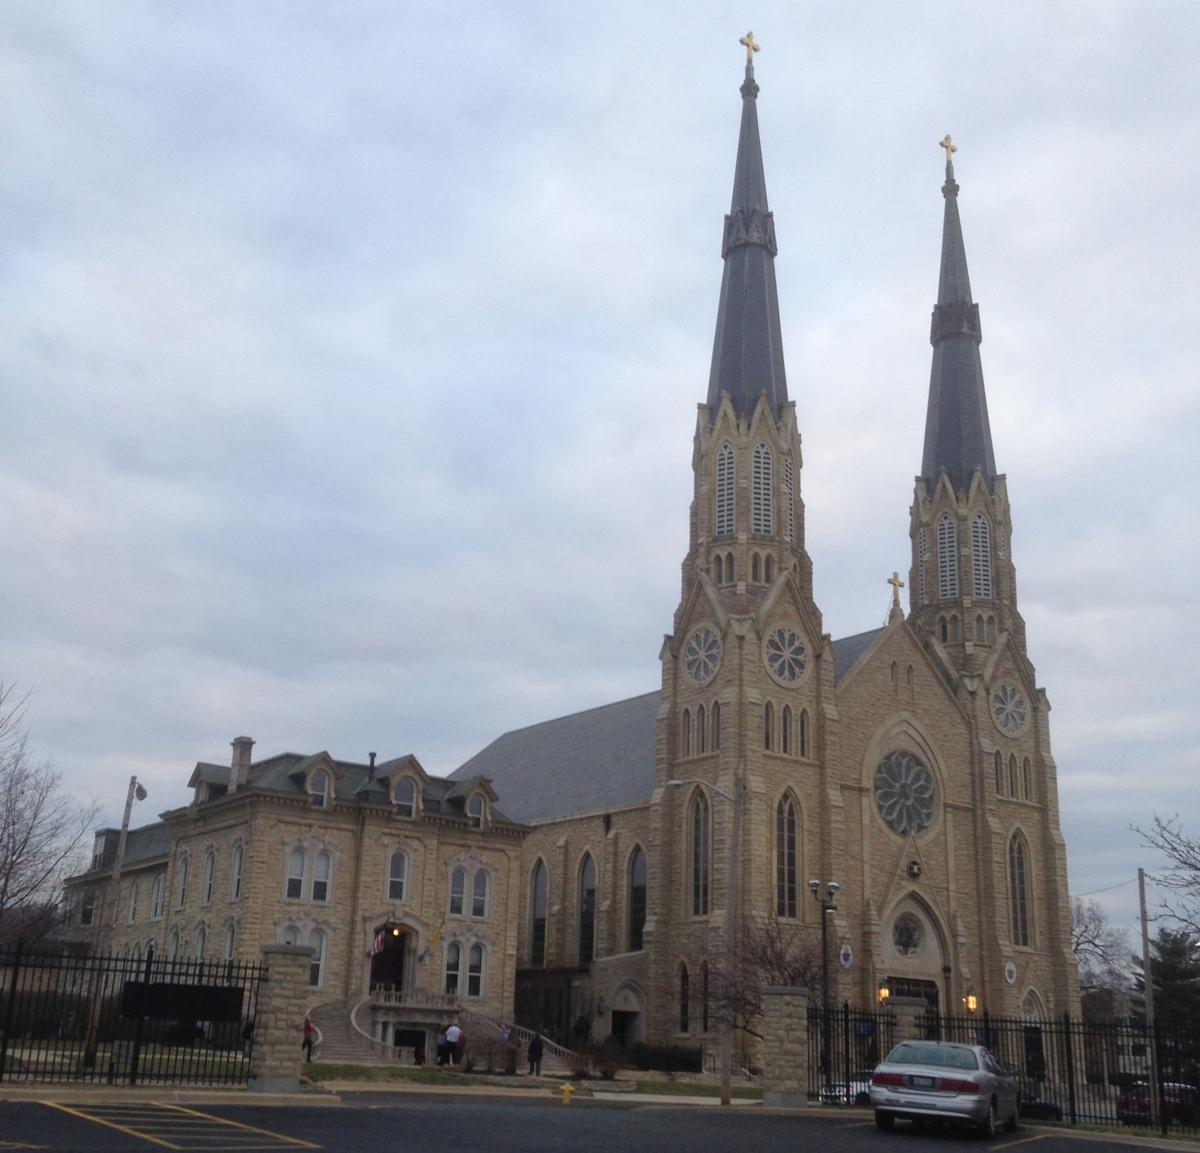 Cathedral of Saint Mary of the Immaculate Conception